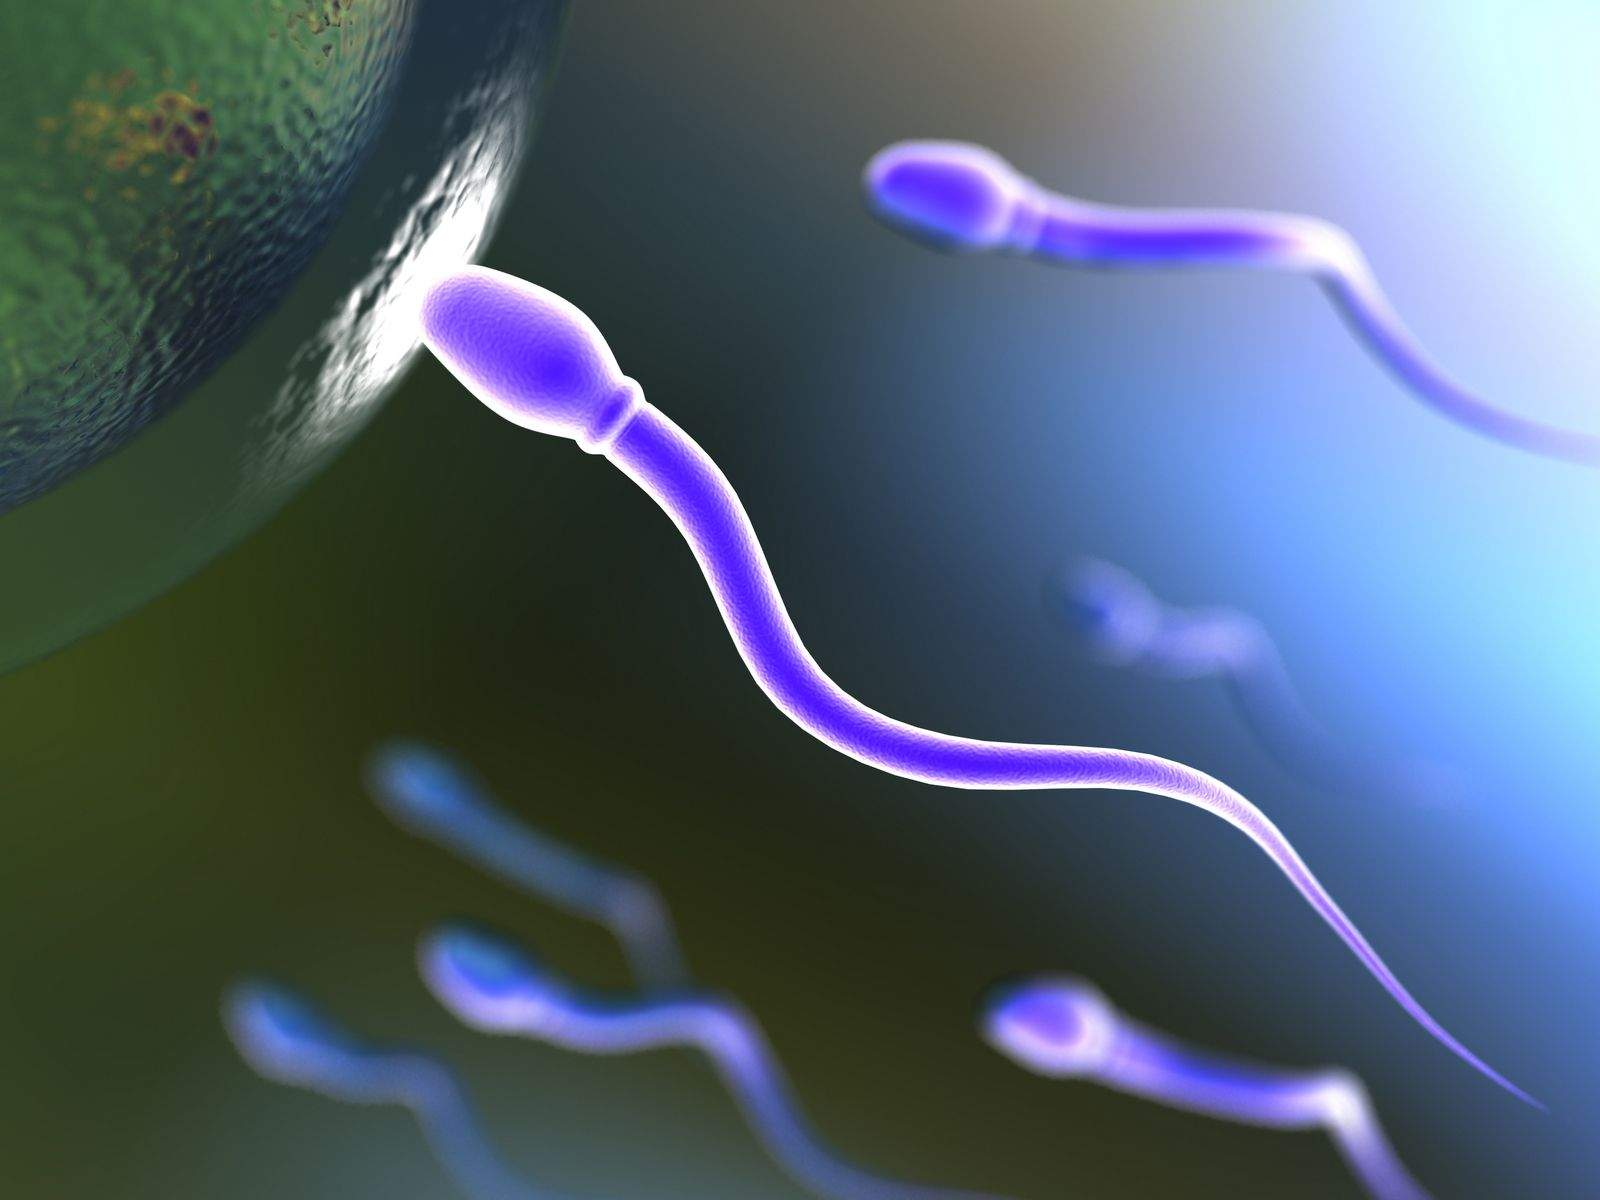 Sperm how to improve volume count and health